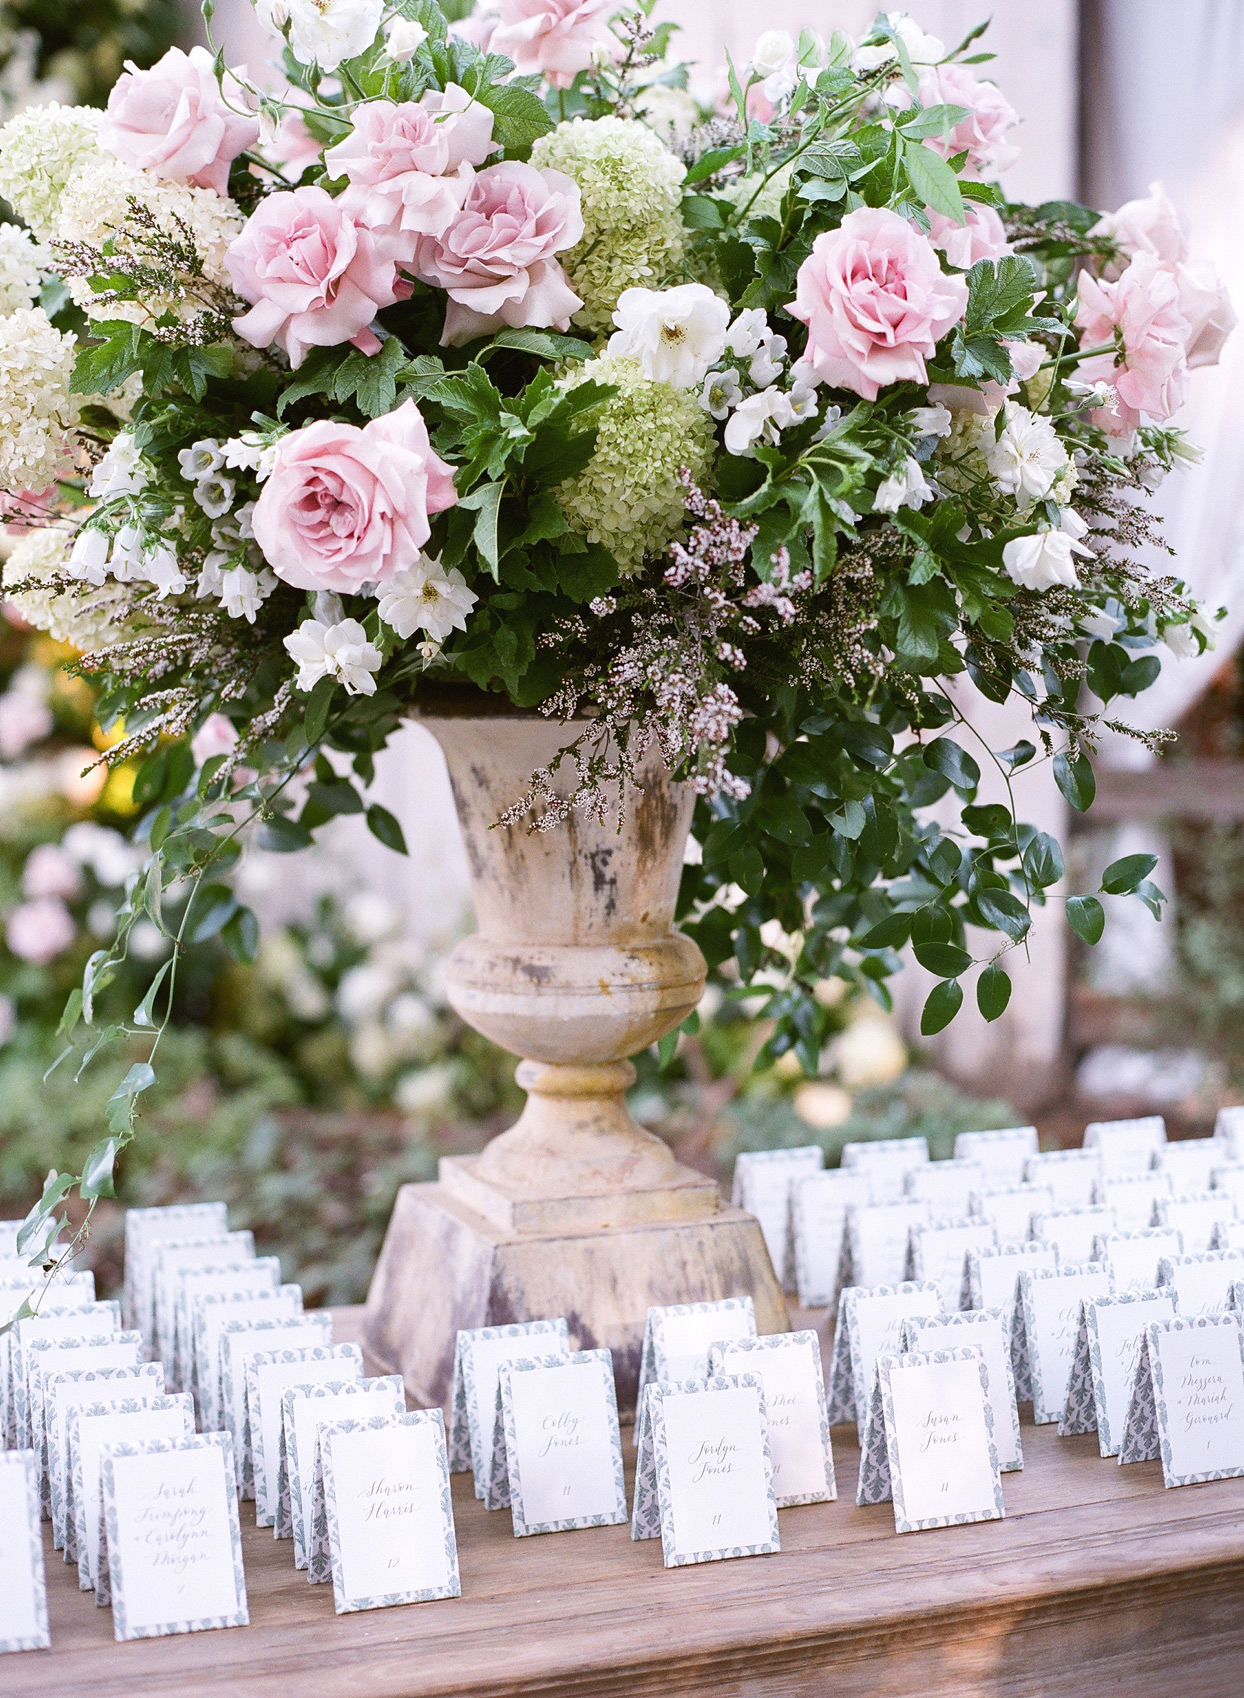 wooden table lined with white escort cards and pink floral arrangement